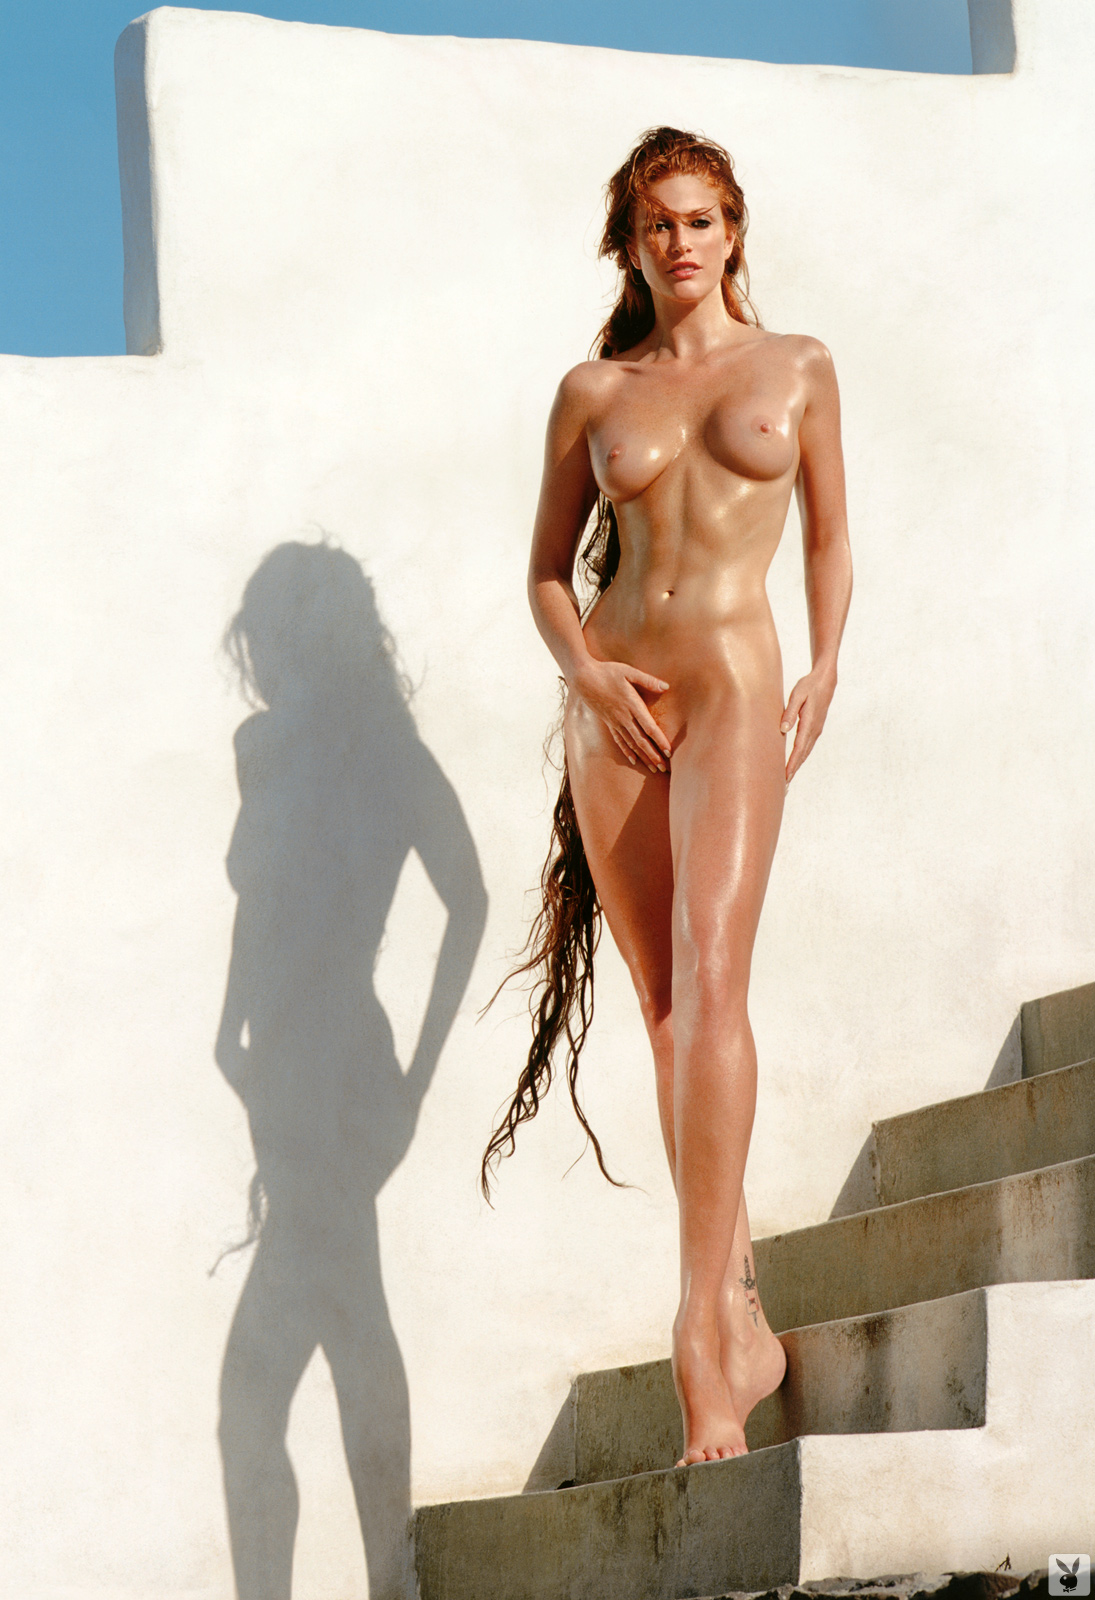 Angie Everhart Hot Videos angie everhart nude - 7 pictures: rating 8.61/10